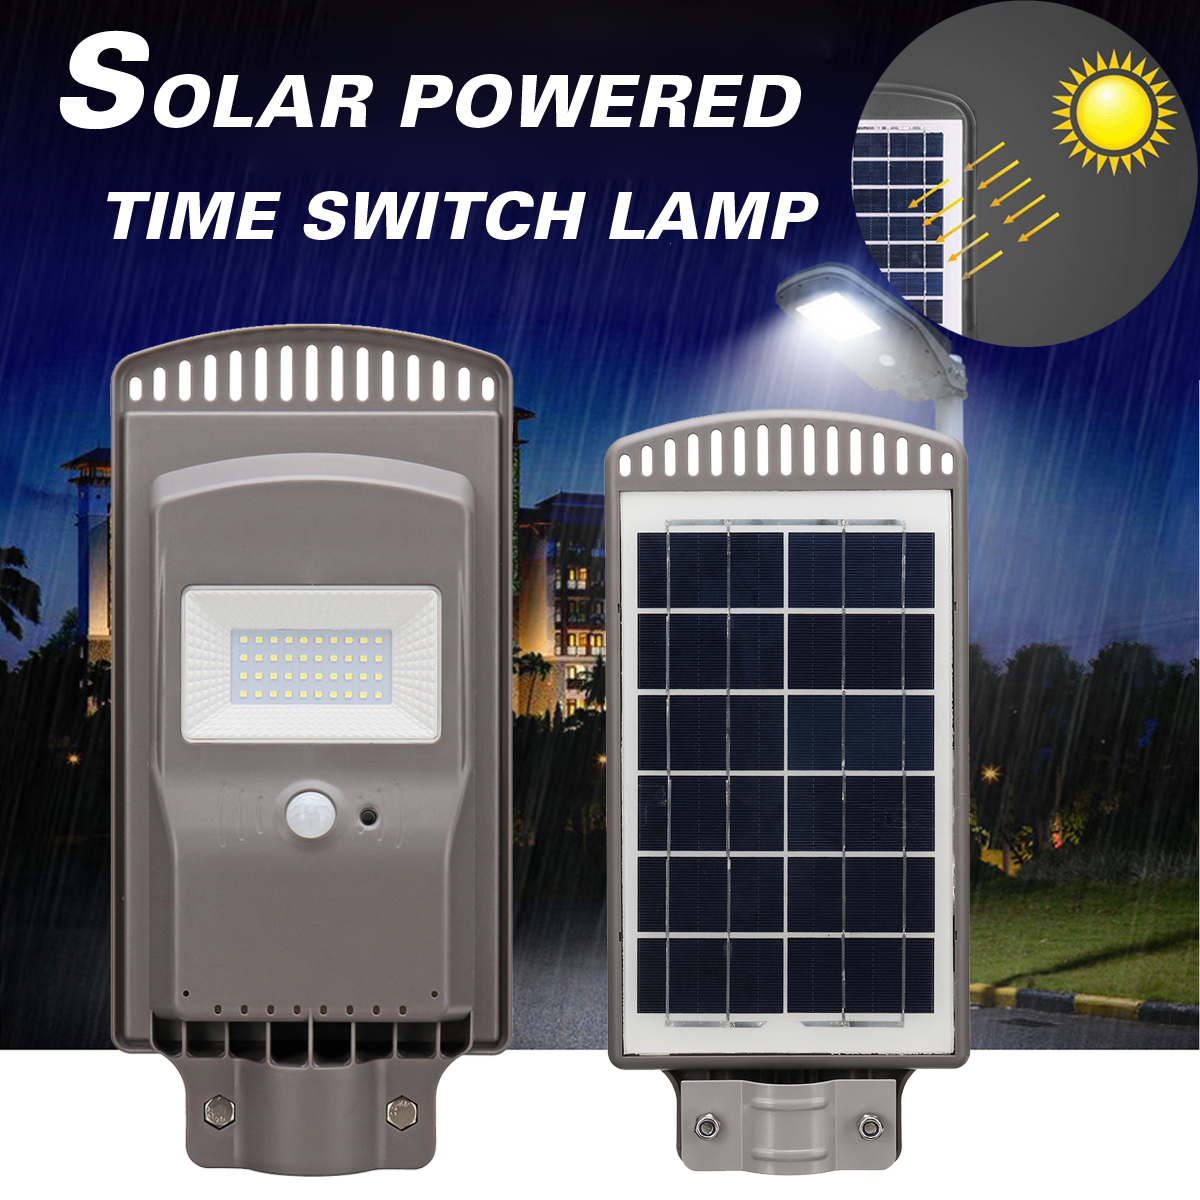 LED Solar Street Light 20W Solar Panel All-in-1 Intelligent Time Switch Waterproof IP67 Wall Lighting Lamp for Outdoor Garden high lumen 60w all in one solar street light south africa for commerical lighting residential lighting